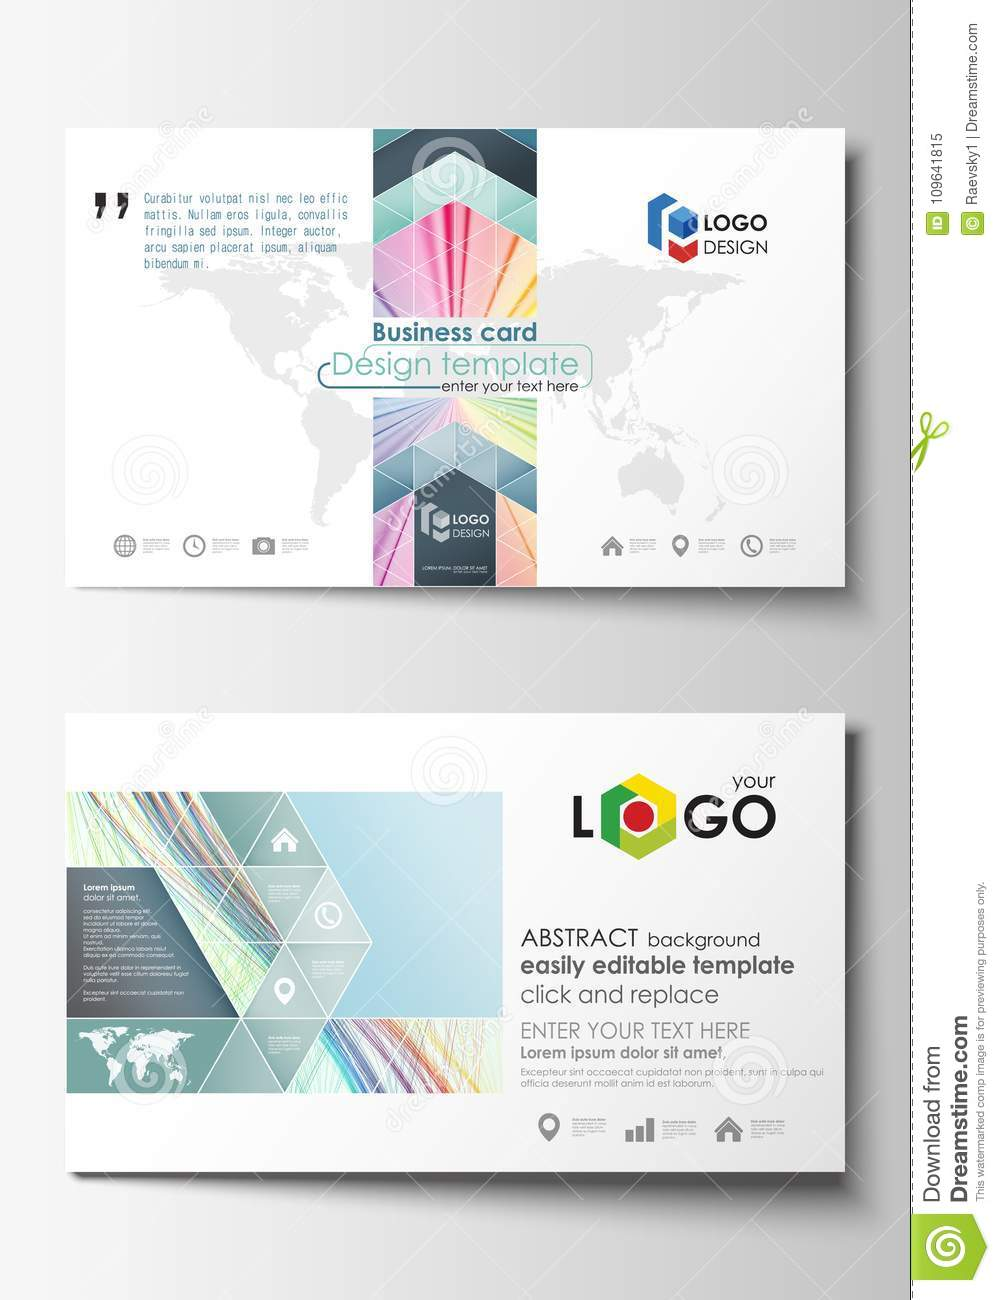 Business card templates cover template easy editable vector flat business card templates cover template easy editable vector flat style layout colorful background with abstract reheart Gallery